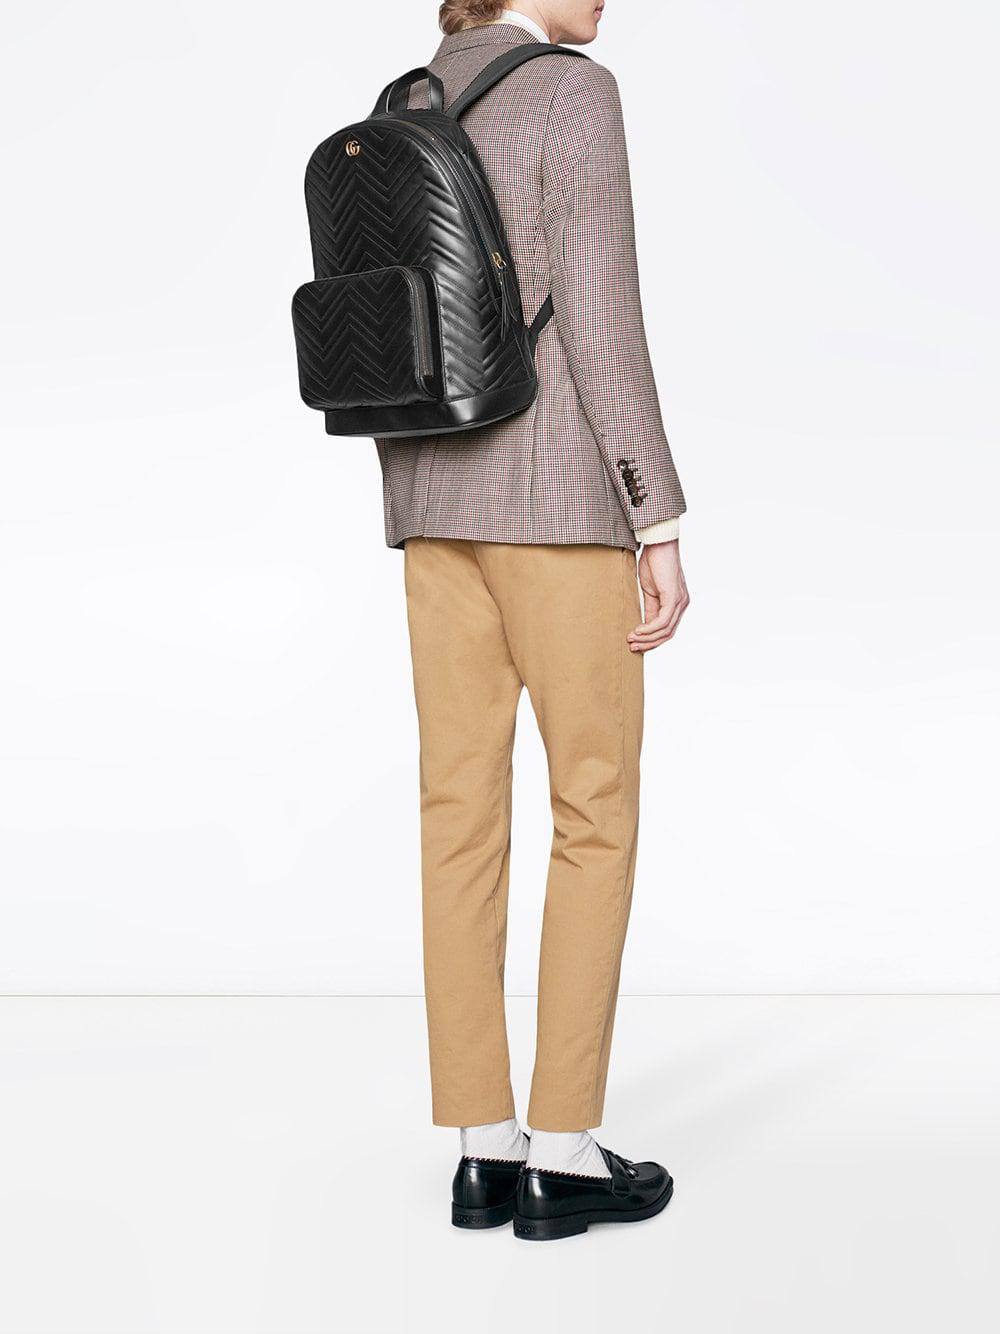 bfe020ff12a3 Lyst - Gucci GG Marmont Matelassé Backpack in Black for Men - Save 22%